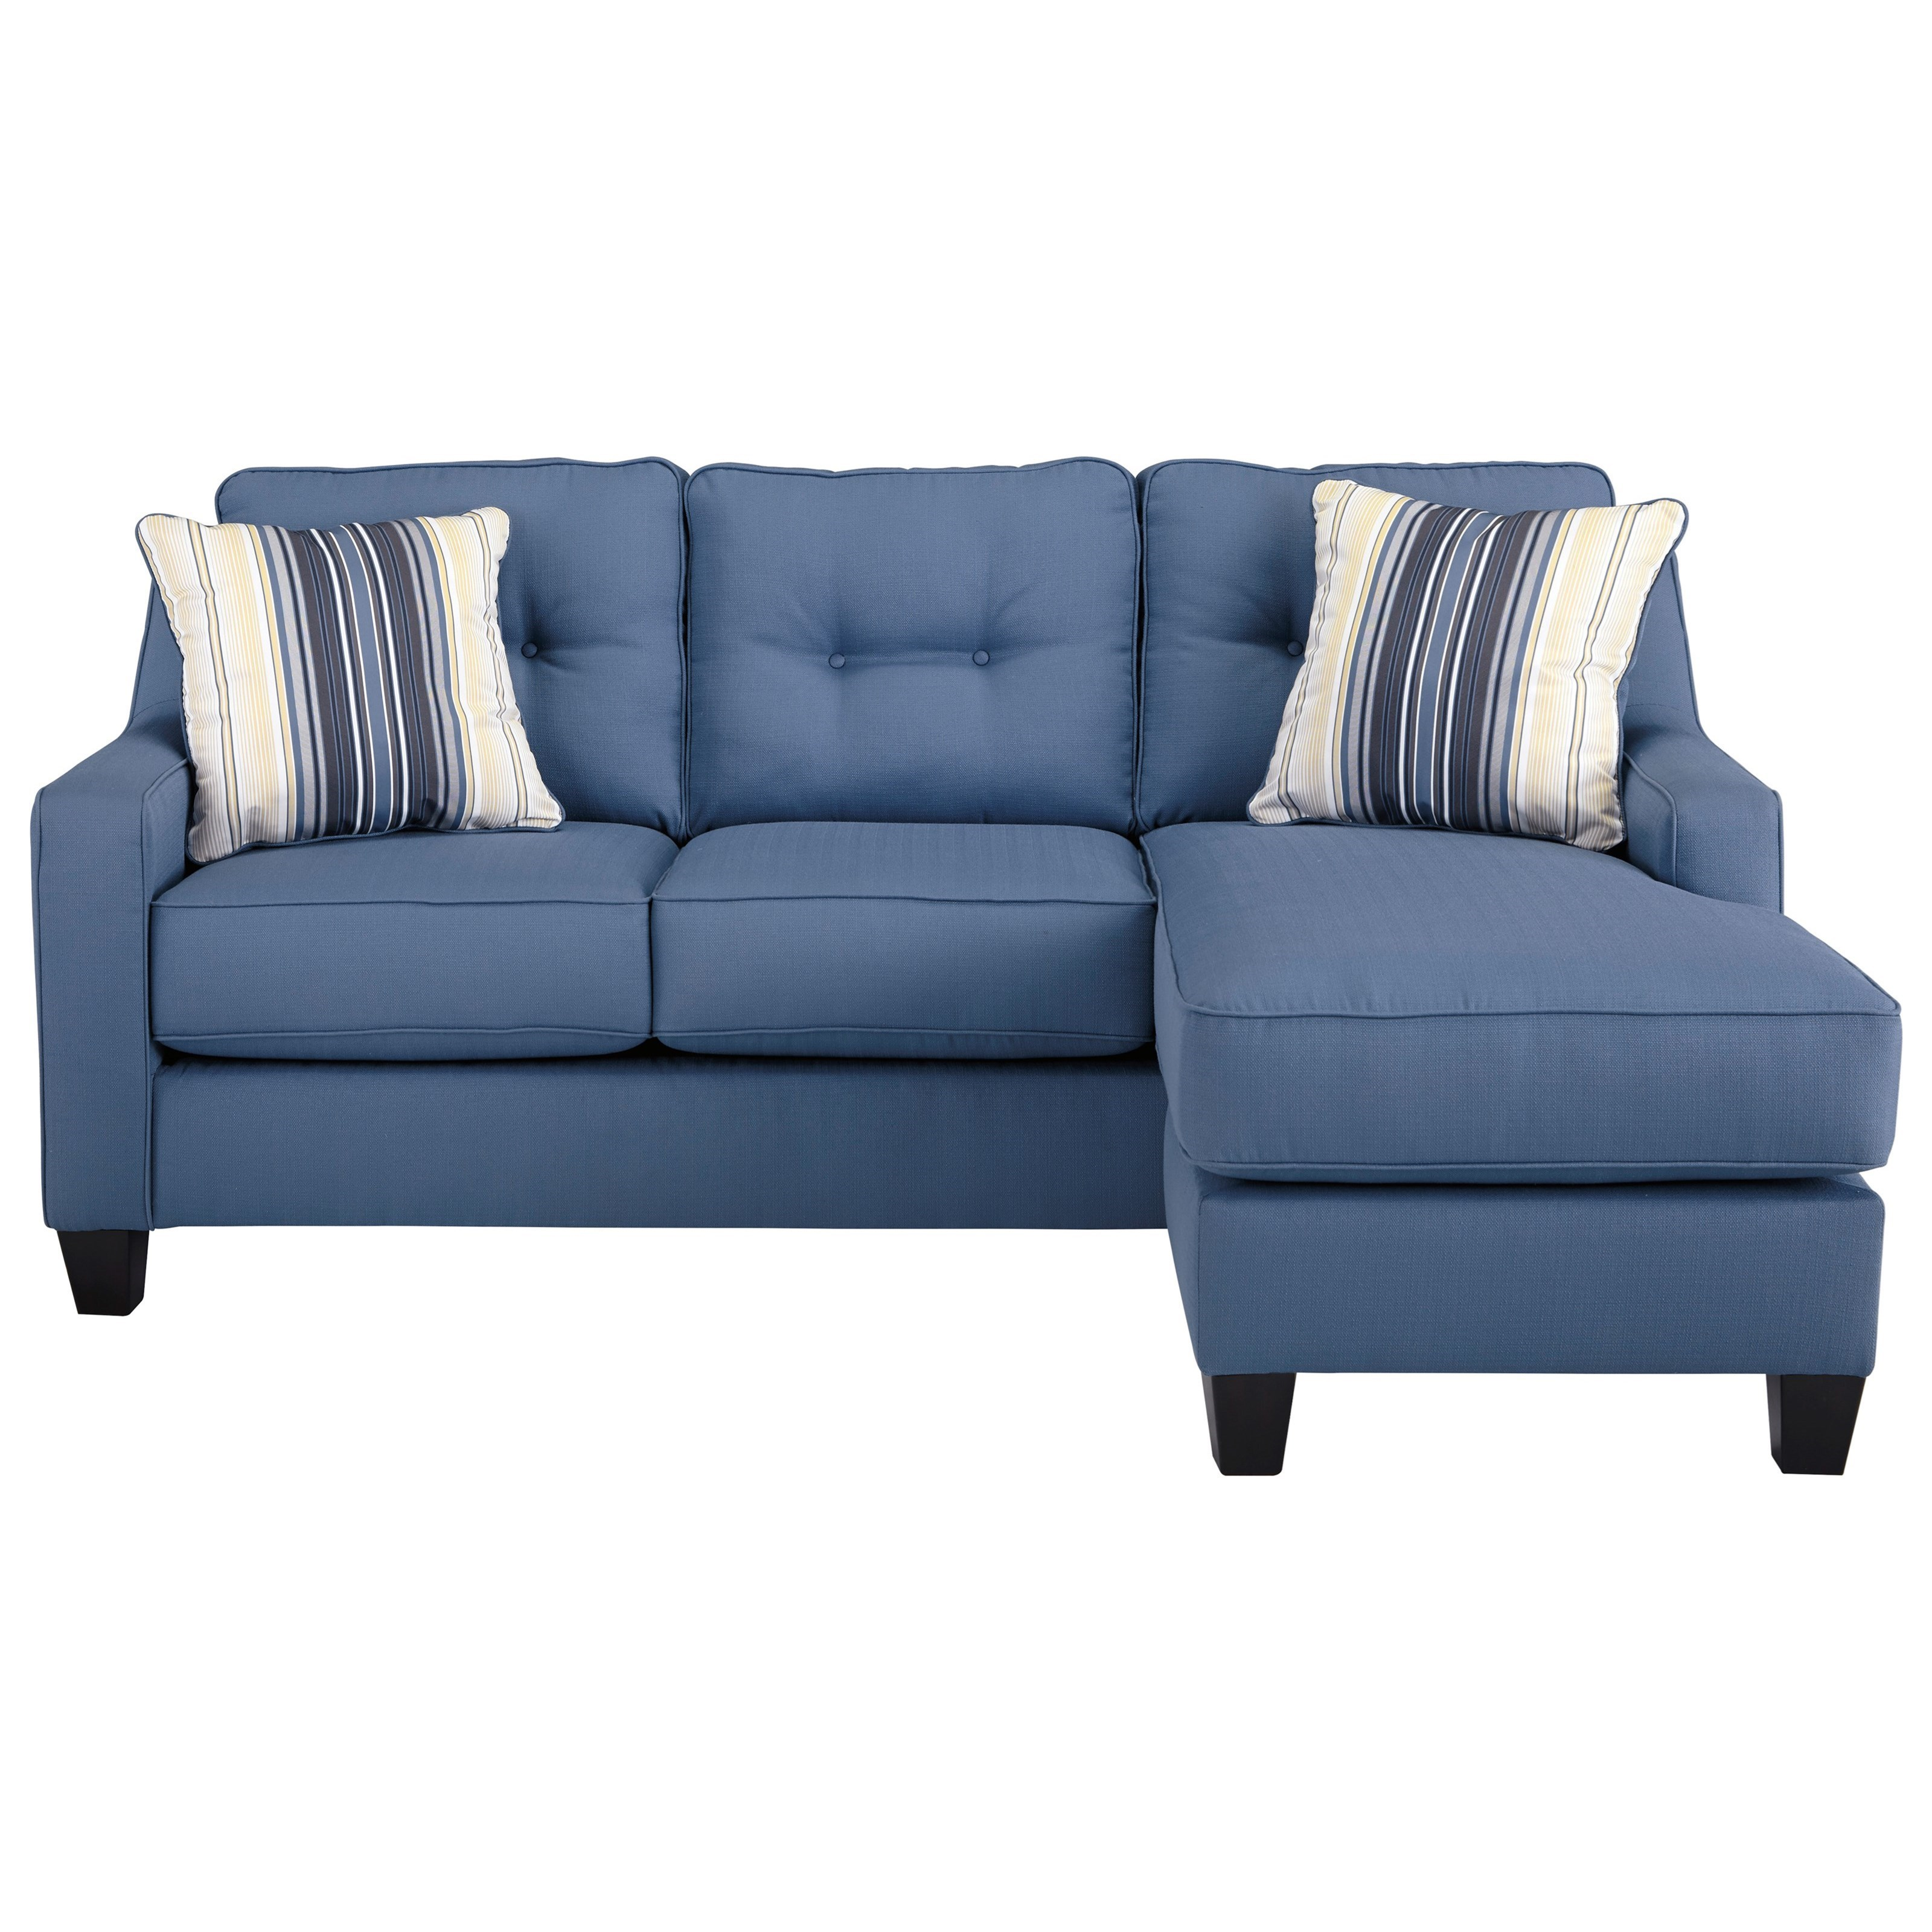 benchcraft by ashley aldie nuvella queen sofa chaise sleeper in rh royalfurniture com crosby queen sleeper sofa chaise crosby queen sleeper sofa chaise